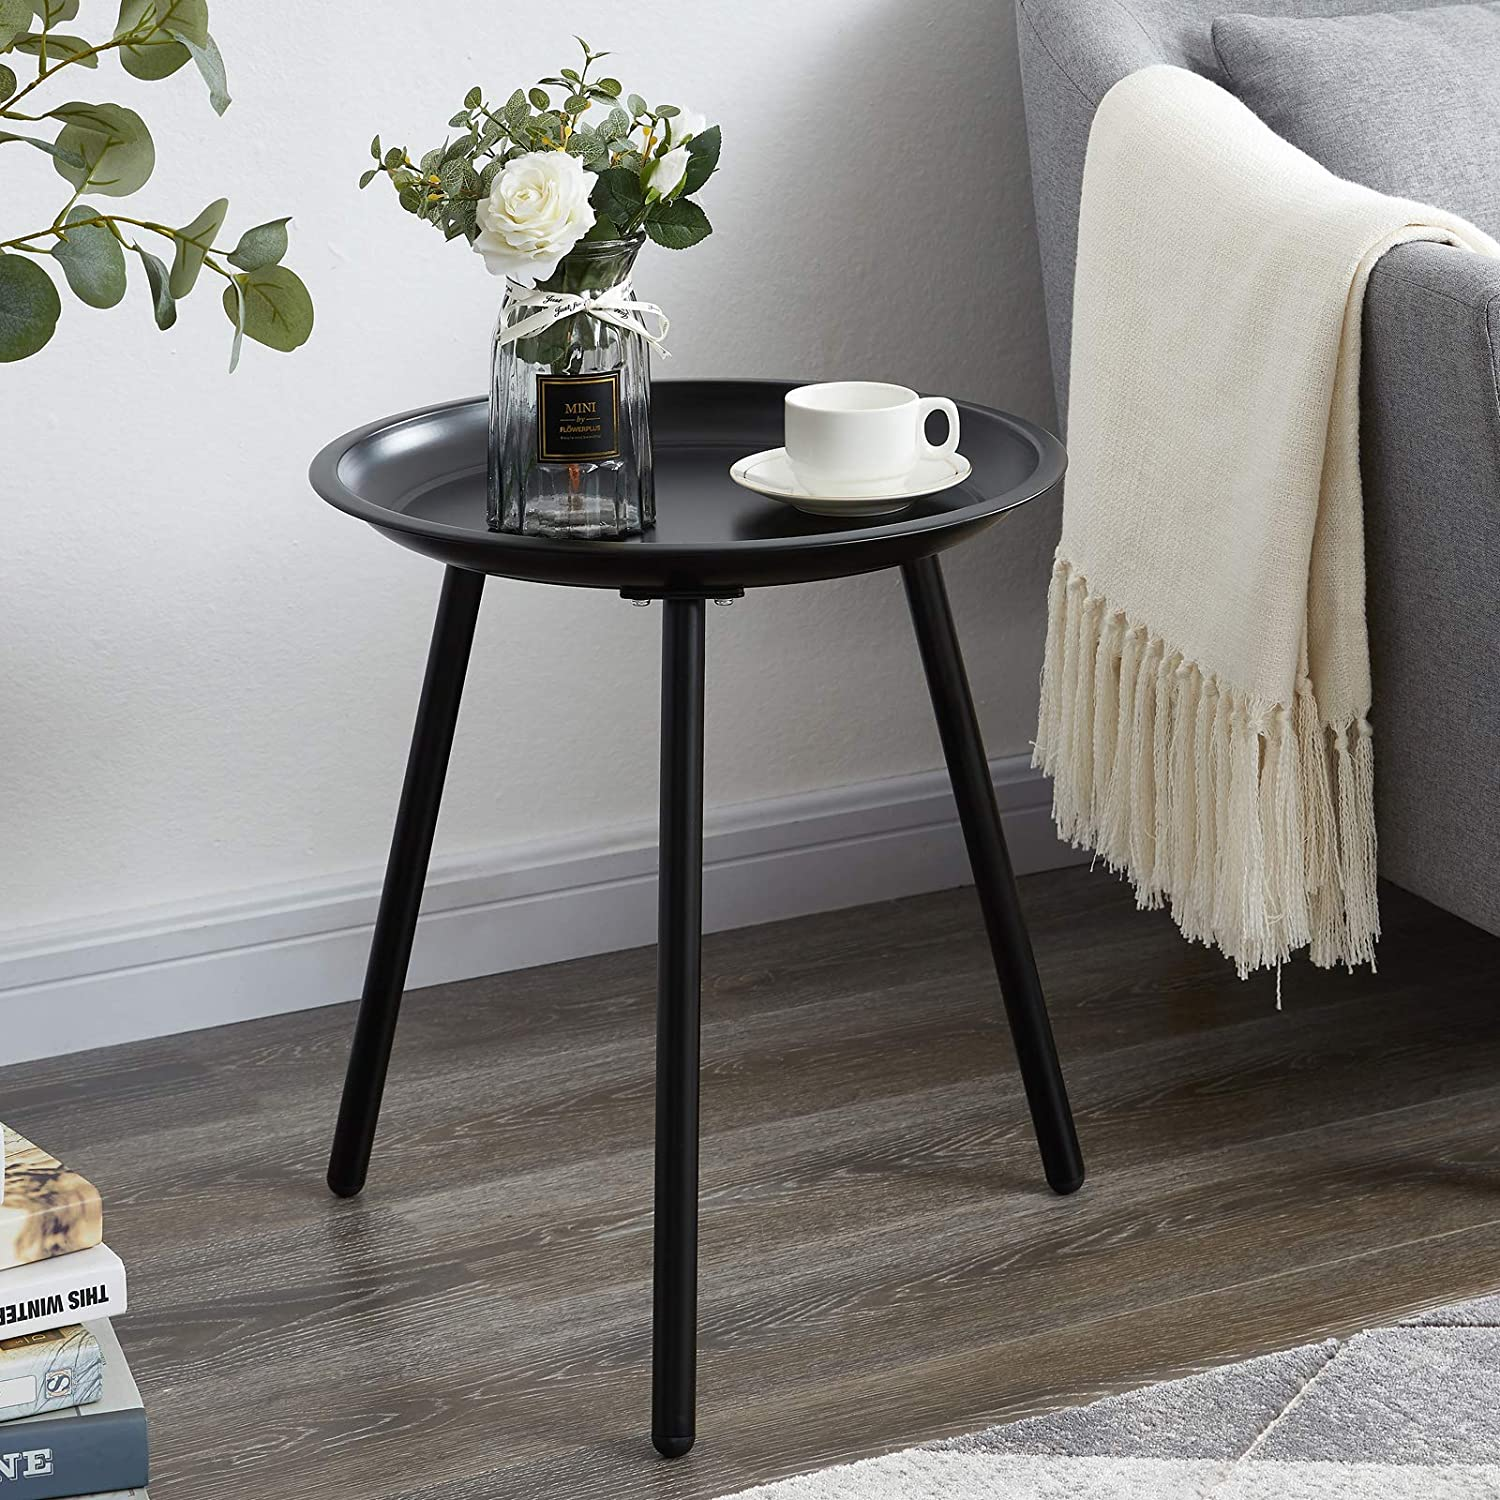 EKNITEY Round End Table, Metal Side Table, Small Coffee Table, Nightstand for Living Room, Bedroom, Office, Easy Assembly (Black)